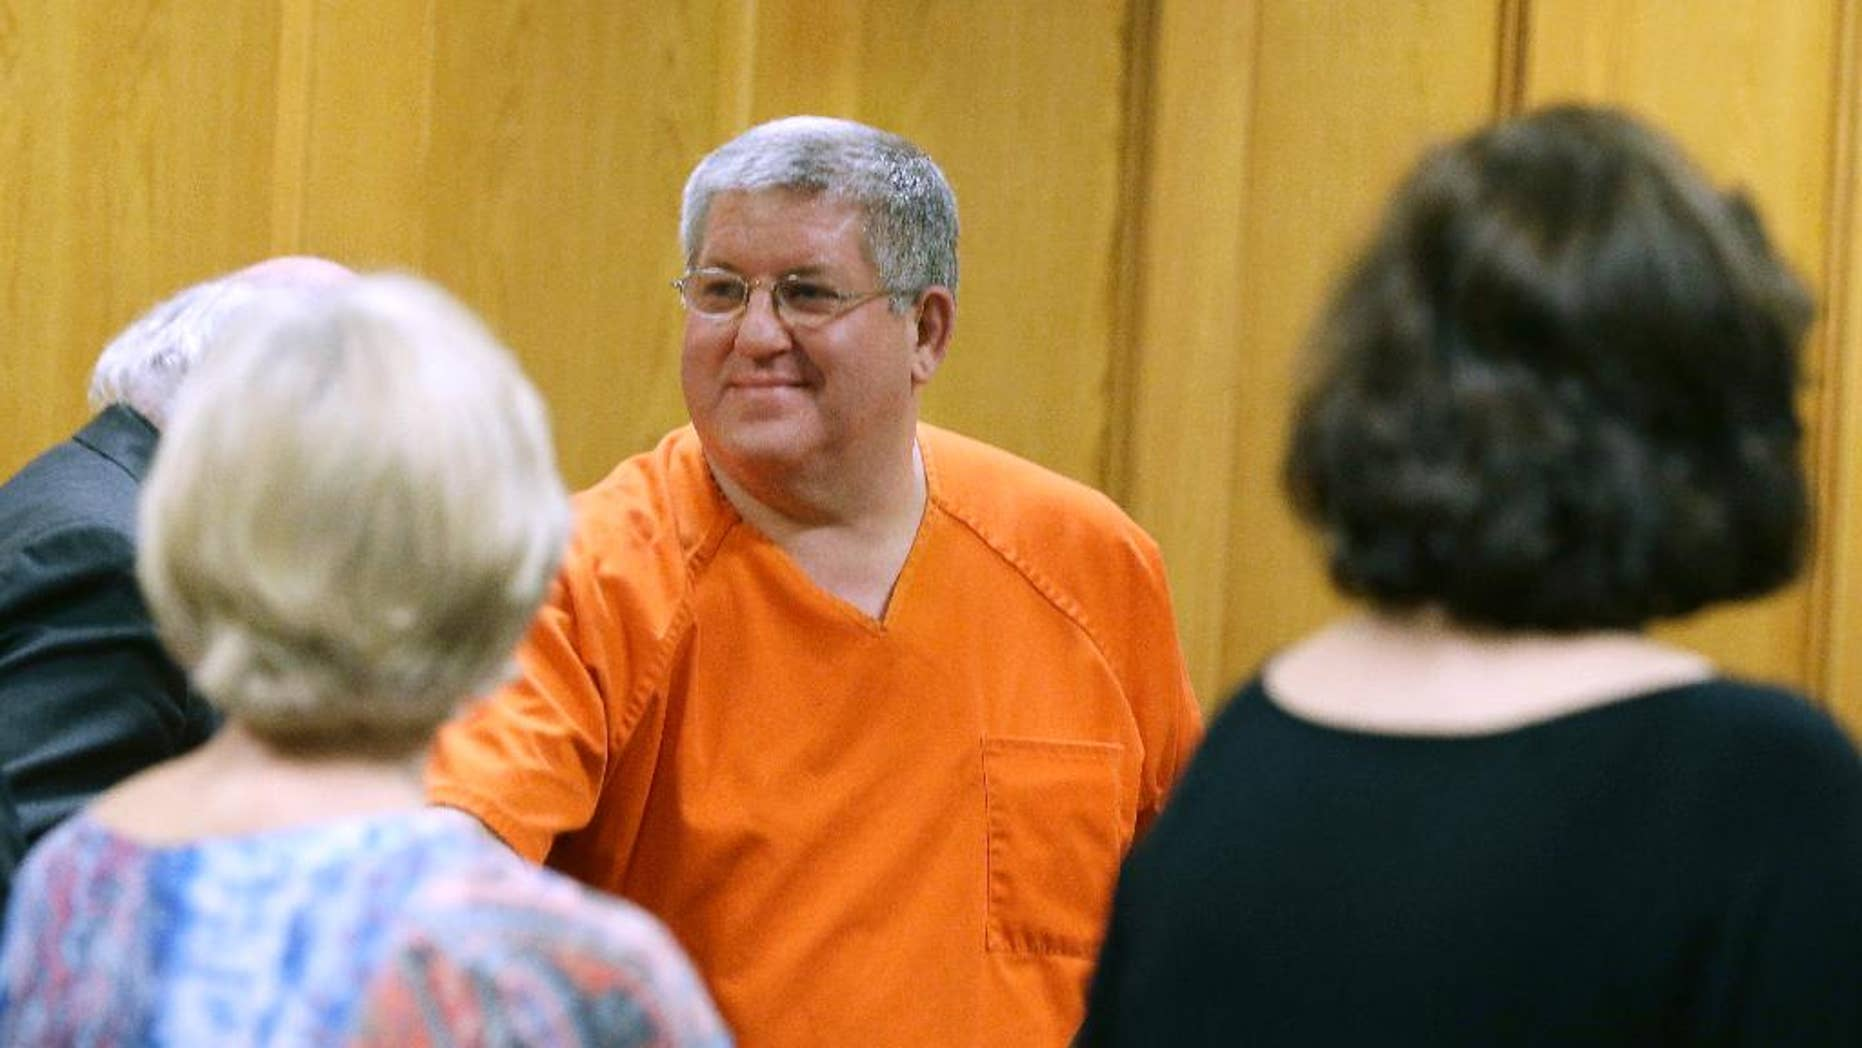 """FILE- In this May 6, 2014, file photo, Bernie Tiede smiles after a court hearing granting his release at the Panola County court house in Carthage, Texas. Tiede had been sentenced to life for killing 81-year-old widow Marjorie Nugent for her fortune. Tiede now faces a new sentencing in the case that inspired the dark comedy """"Bernie."""" (AP Photo/LM Otero, File)"""